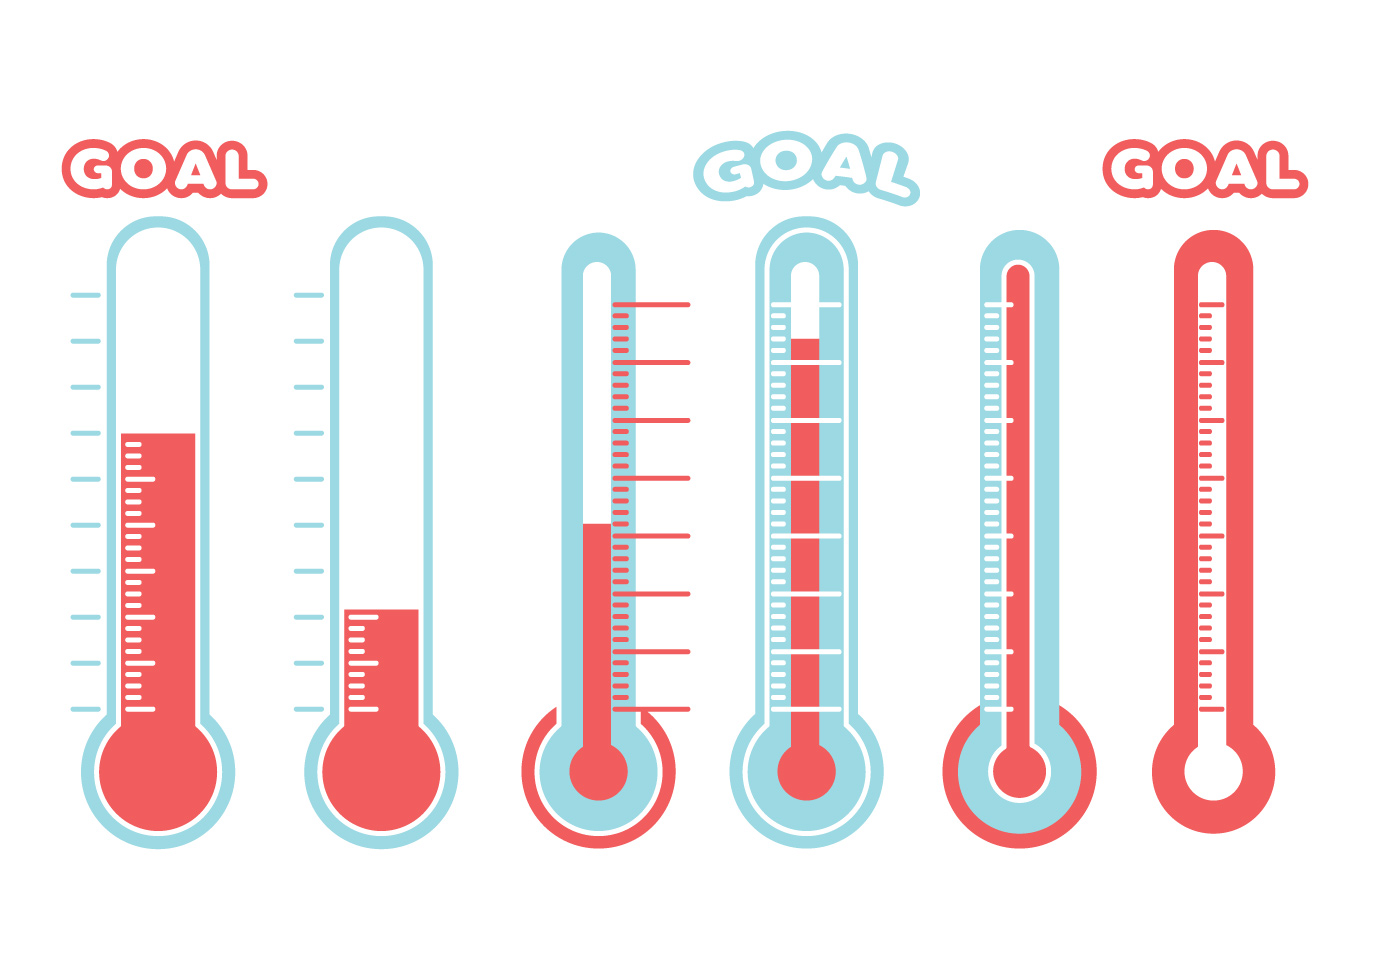 Pin Goal Thermometer Images